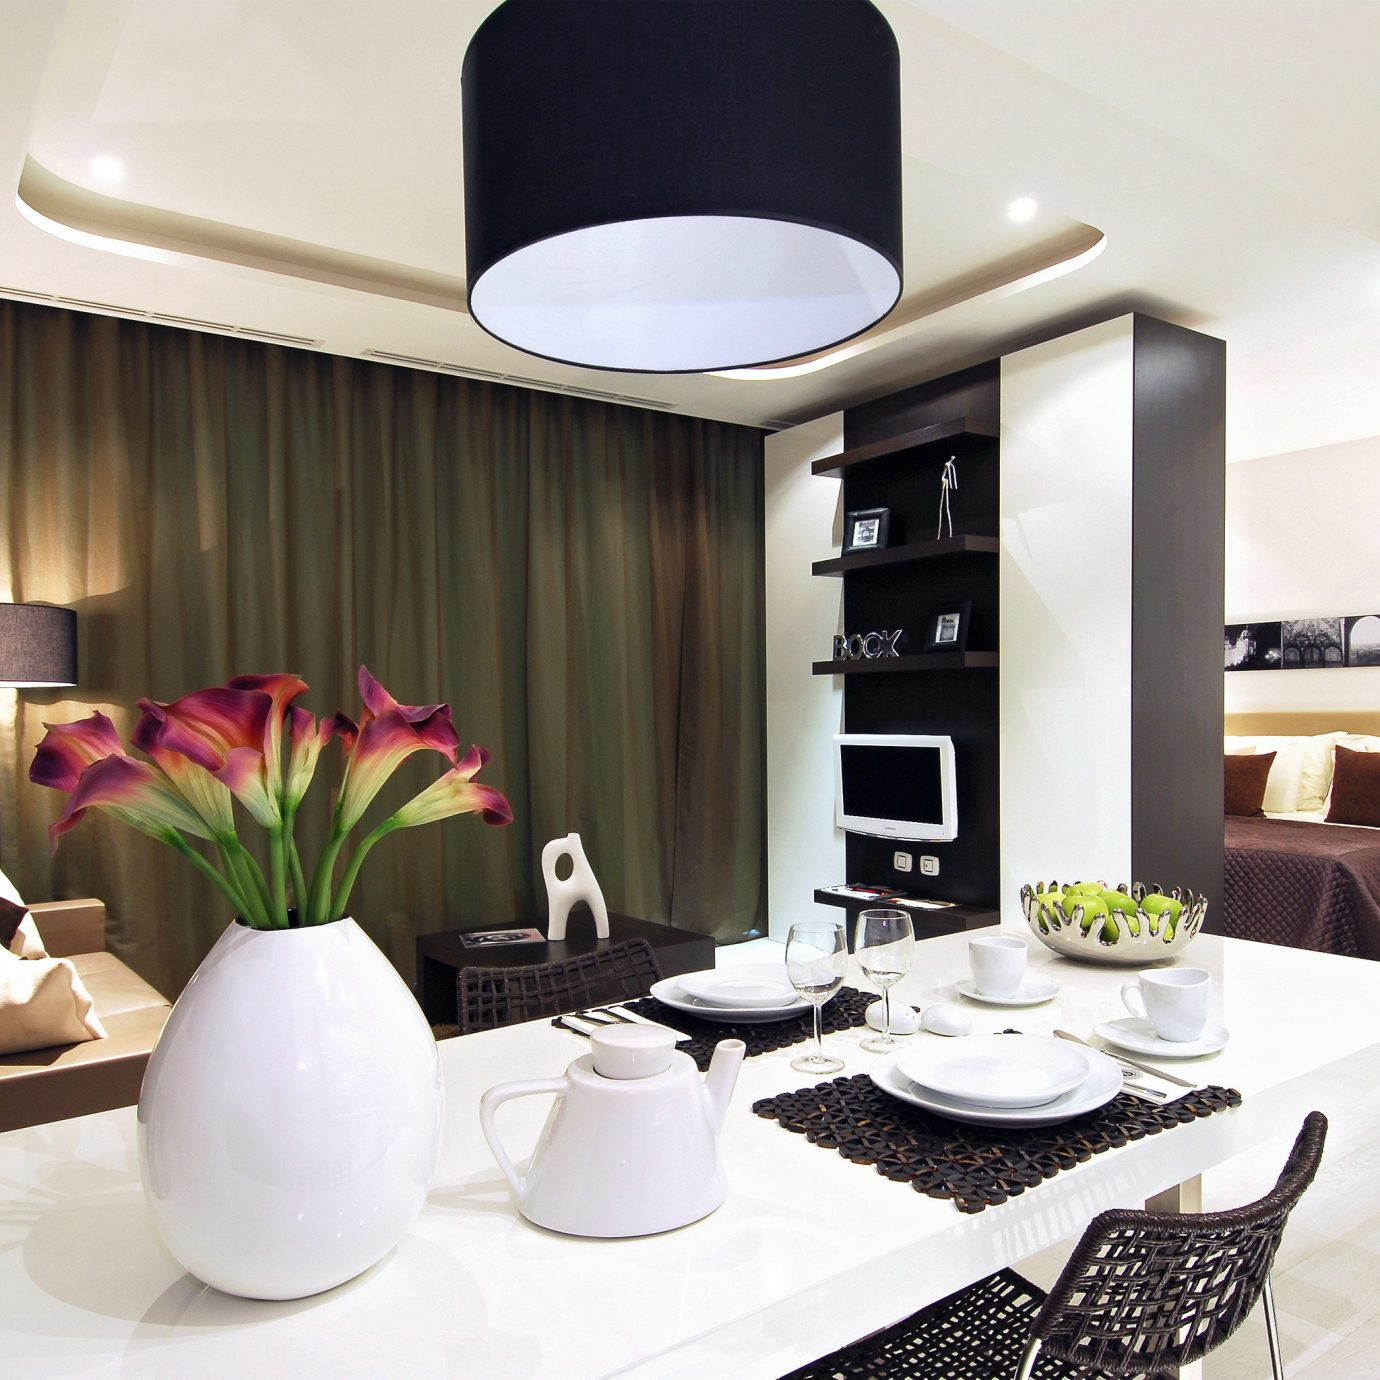 Bedroom Kitchen Modern Suite living room property condominium home lighting Lobby dining table